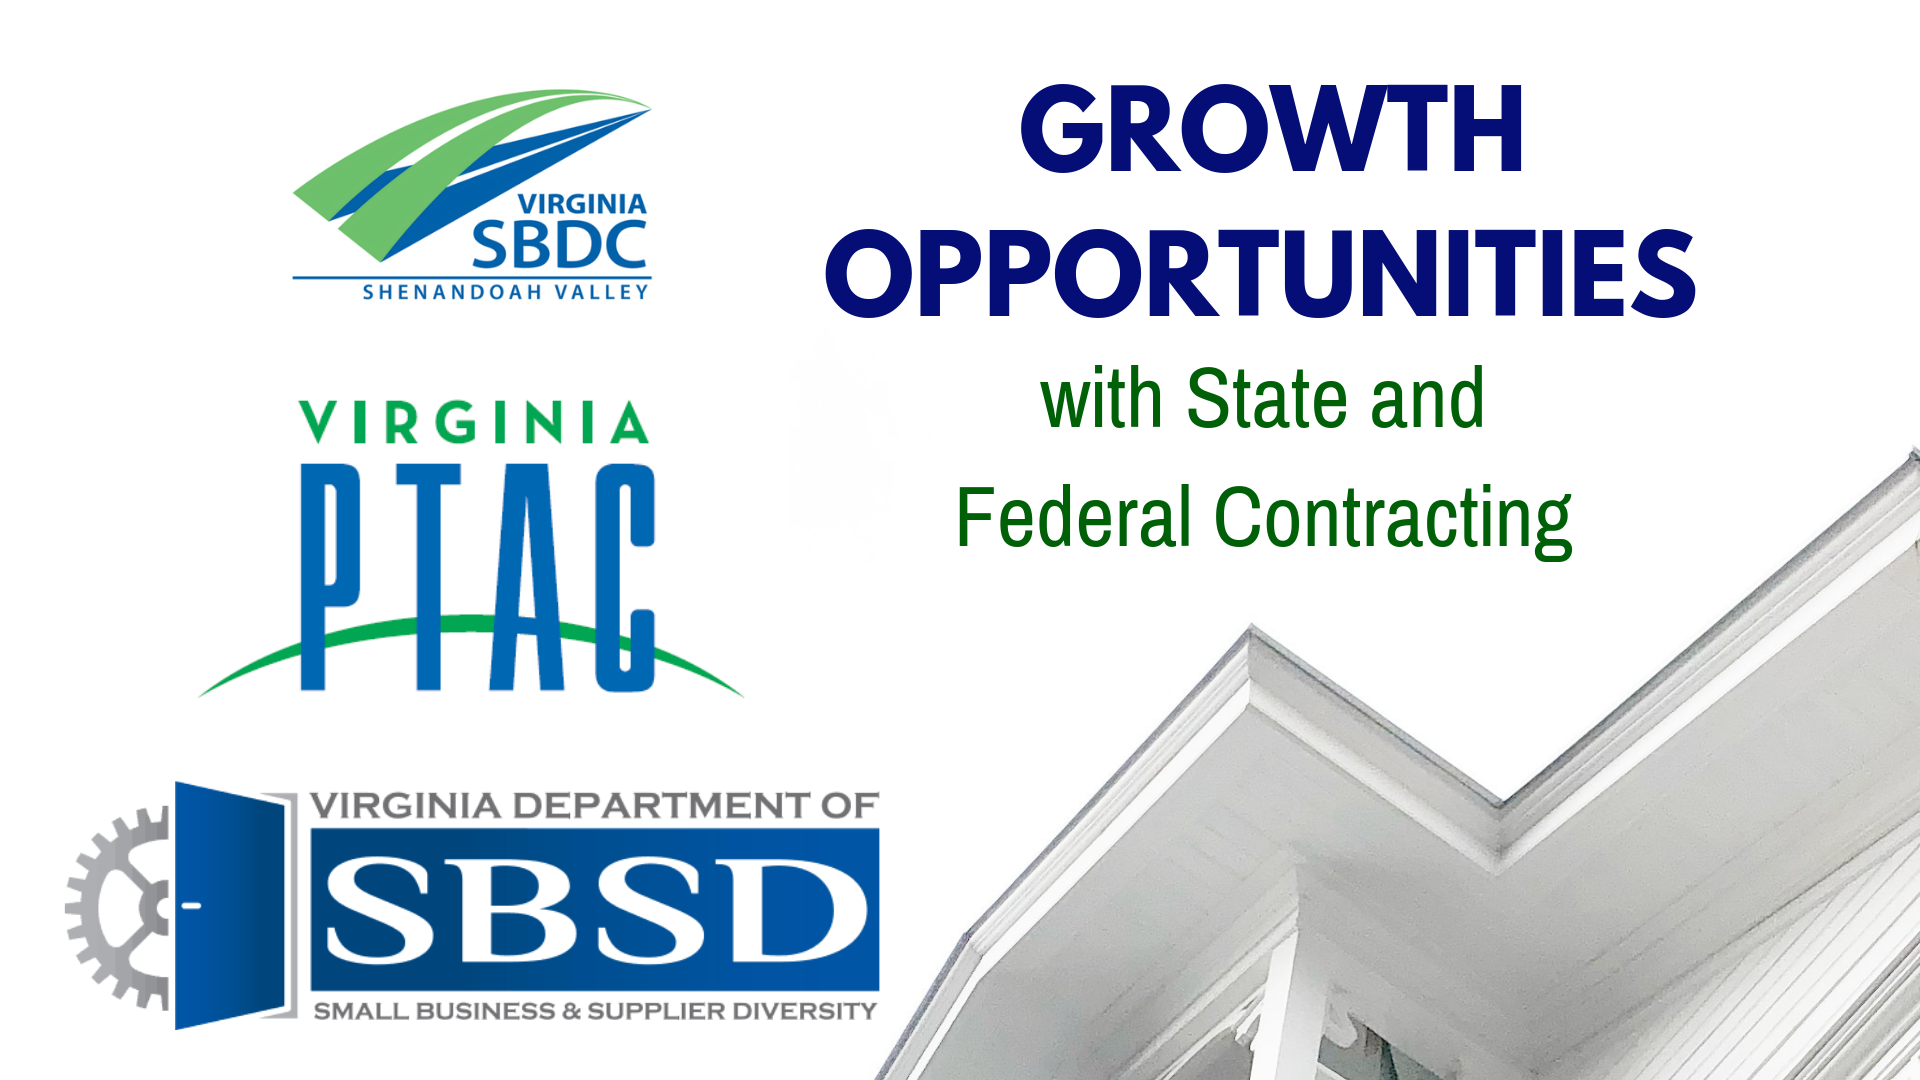 Growth Opportunities with State and Federal Contracting @ JMU Ice House in Harrisonburg